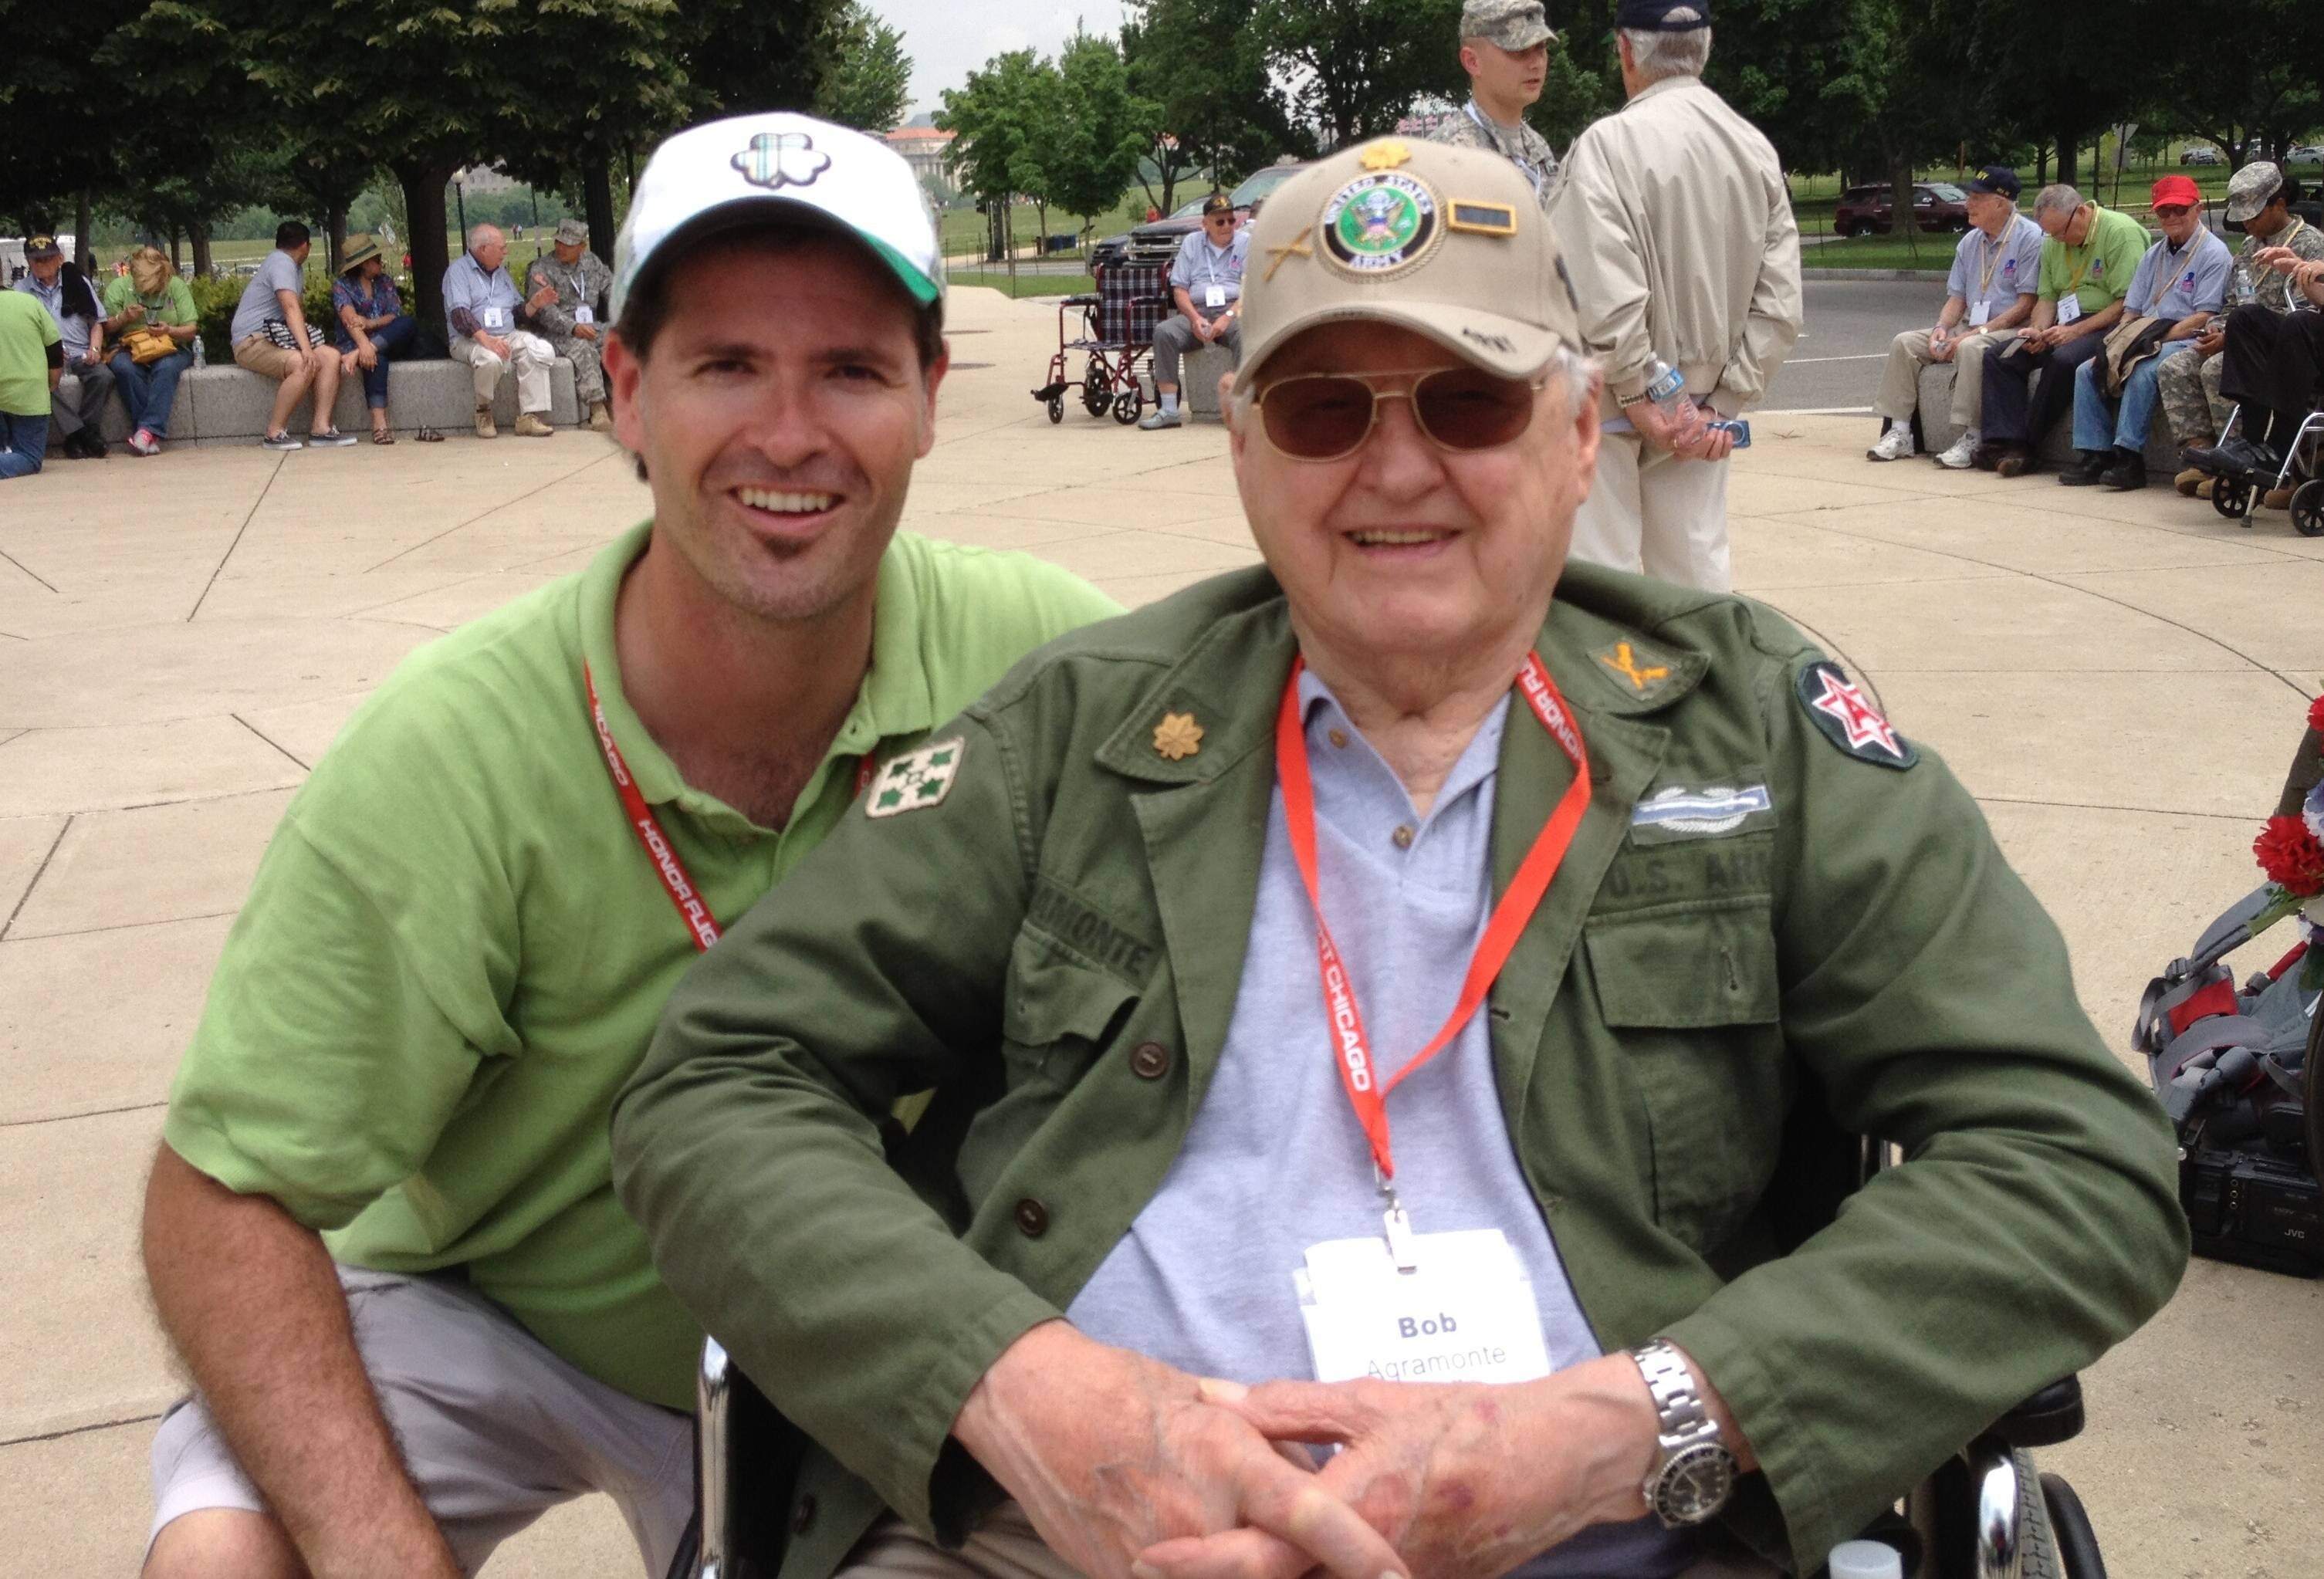 Pictured: Kevin Willman (left) with WWII veteran Bob Agramonte.